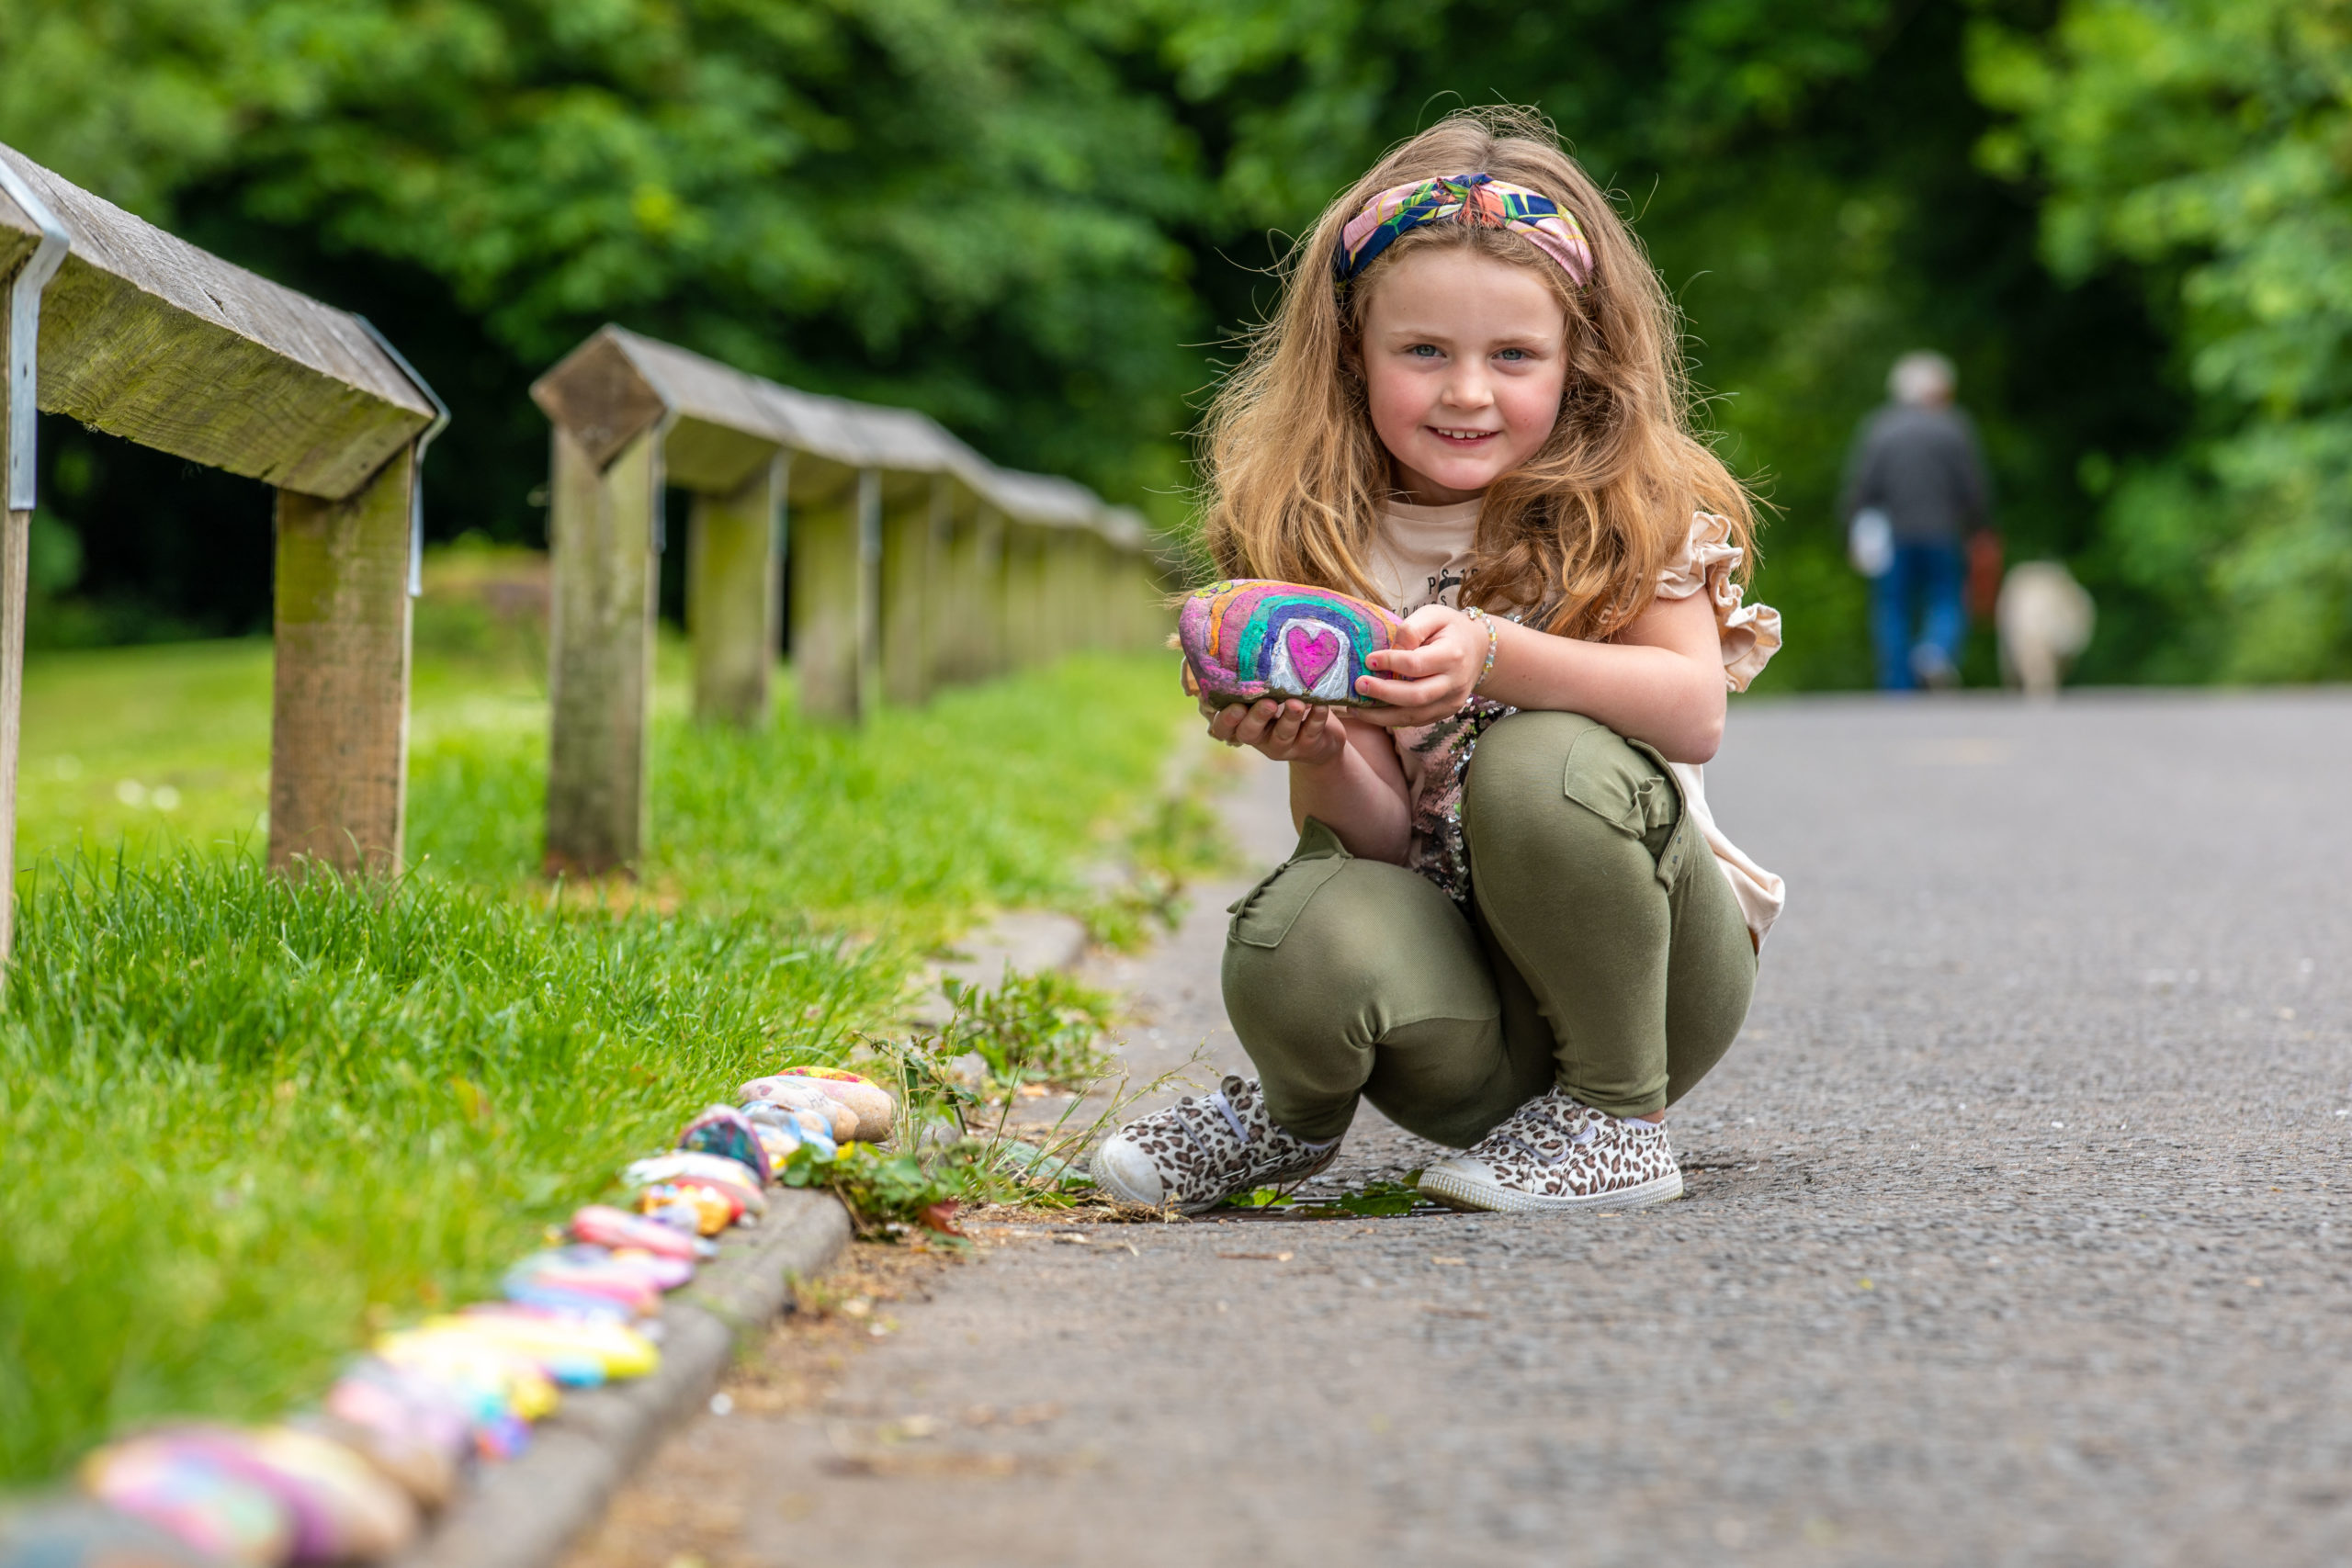 Gracie Gilmour from Leslie placing stone on the 'snail trail' at Gilvenbank Park.